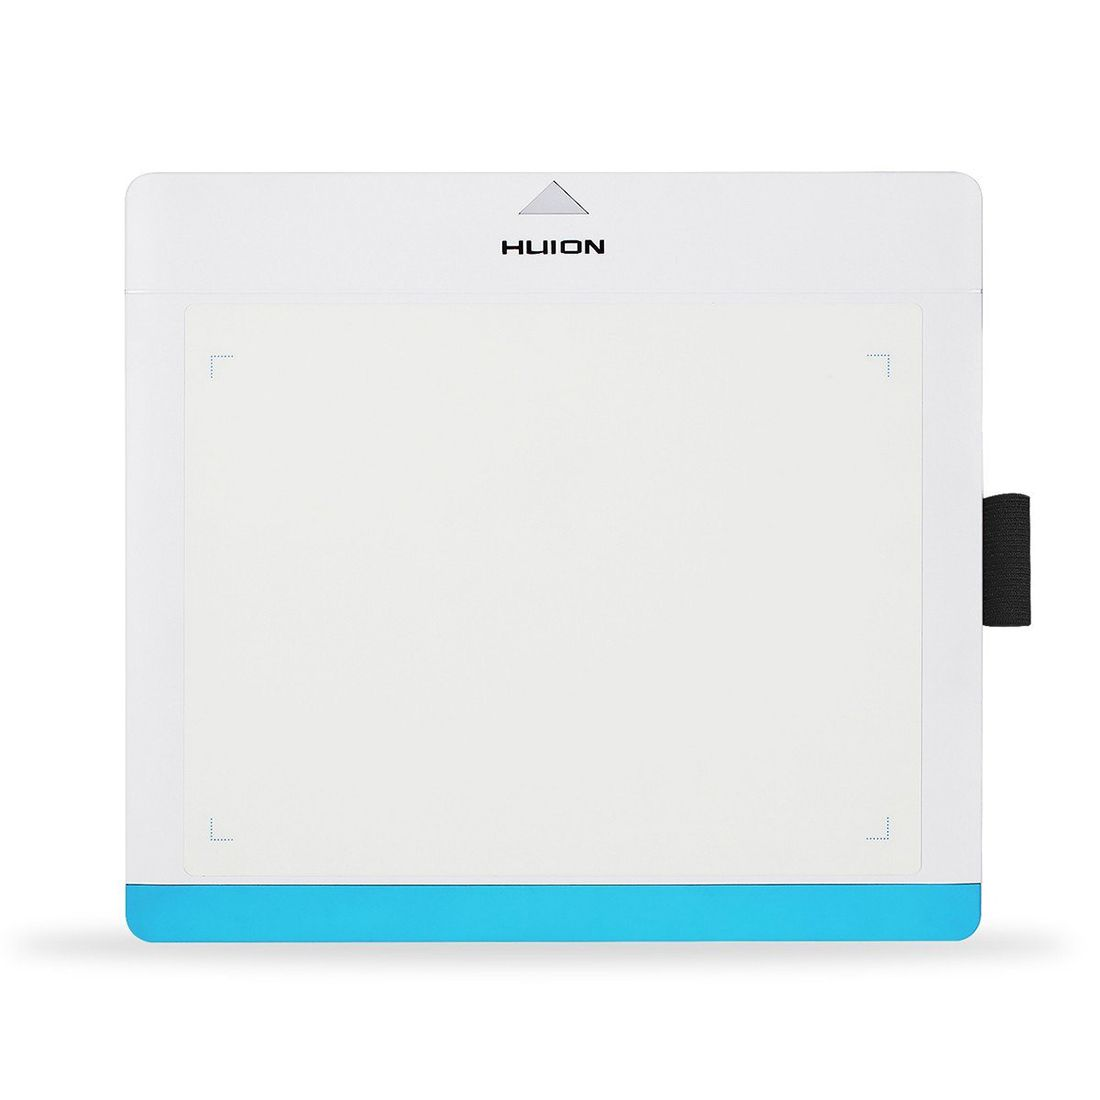 все цены на Huion Built-in Card Reader with MicroSD Card Graphics Drawing Pen Tablet - 680TF (White & Blue) онлайн